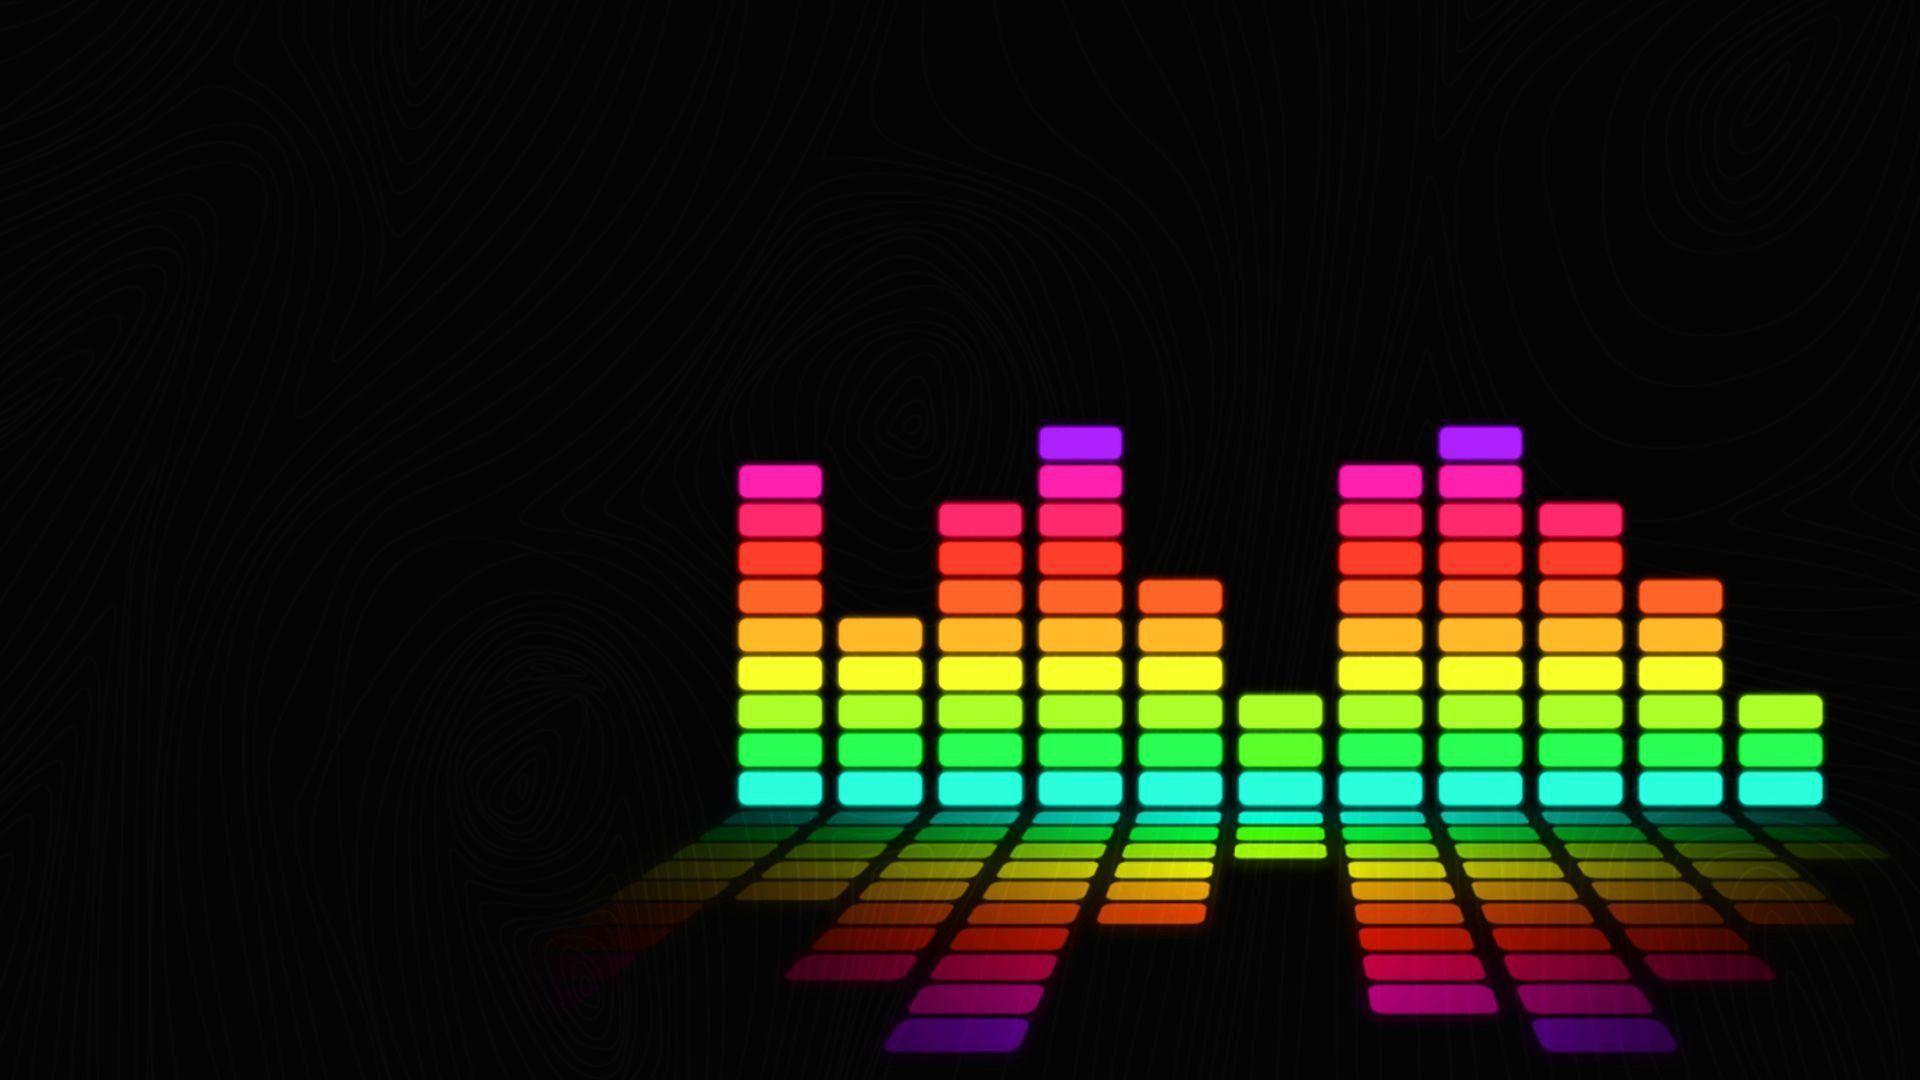 Electro House Wallpapers HD Resolution